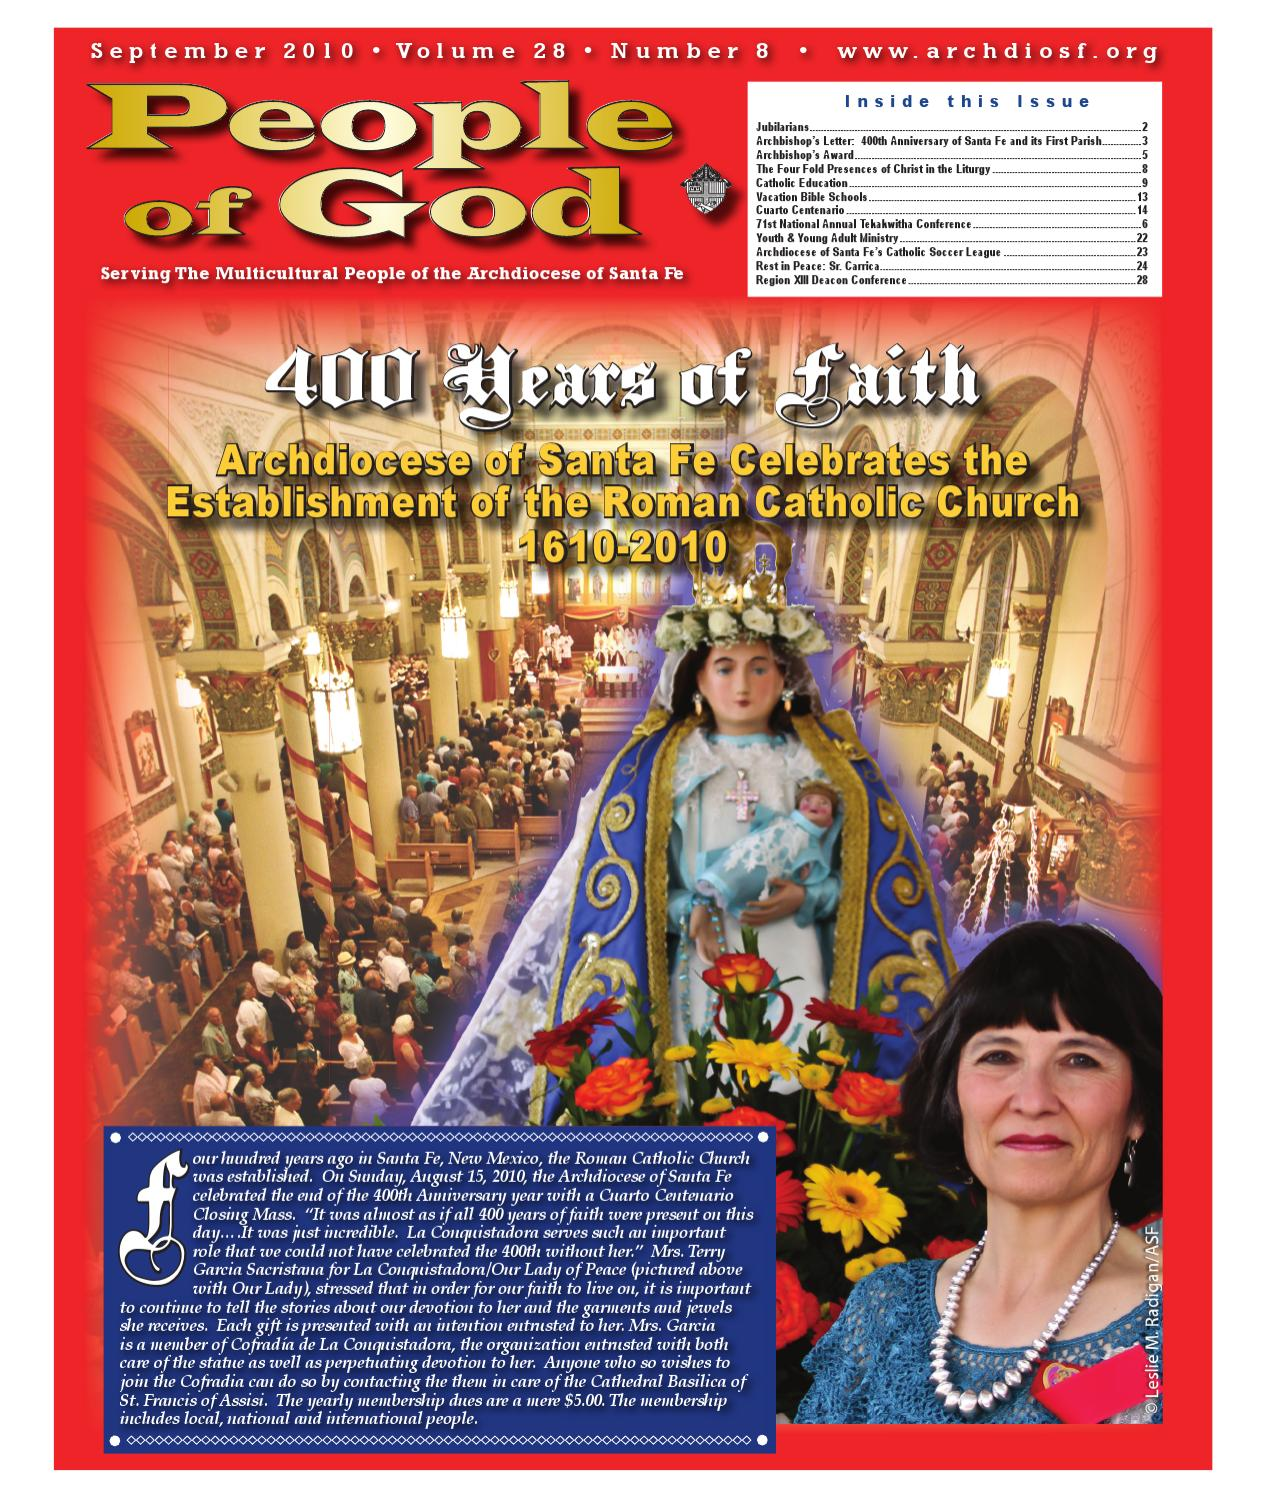 Autism And Anxiety Common Companions_23 >> People Of God September 2010 By Archdiocese Of Santa Fe Issuu